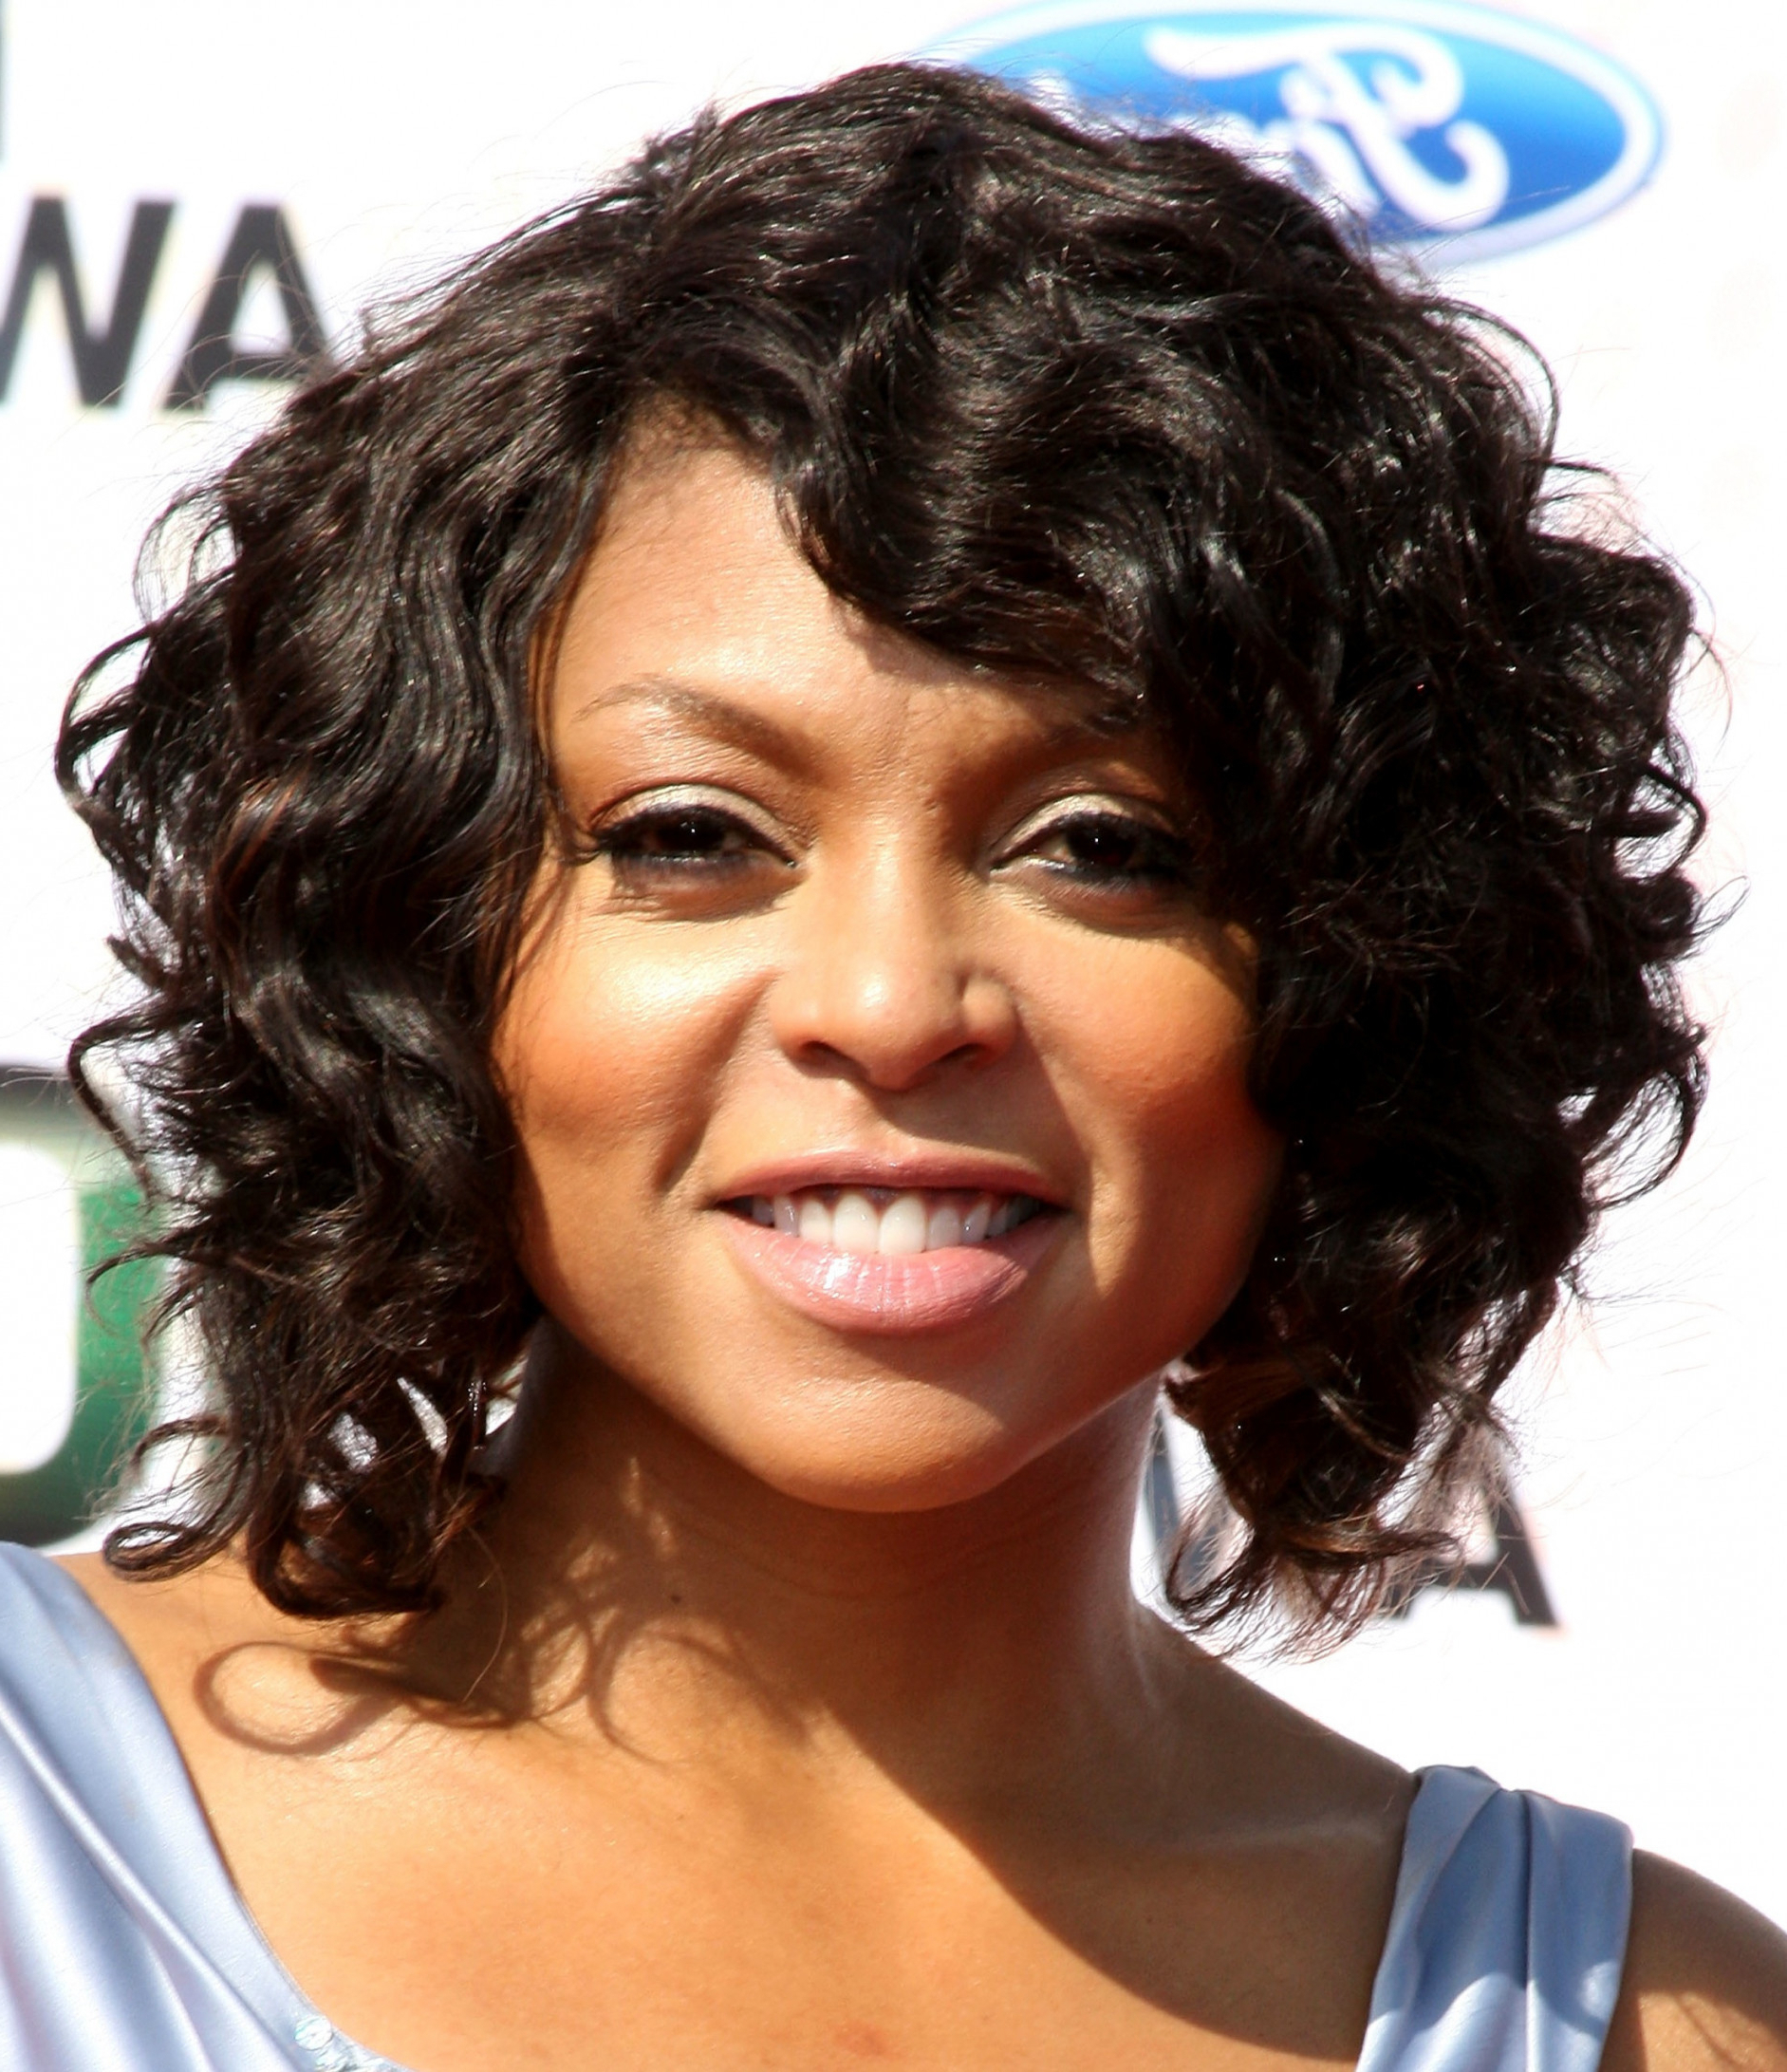 Black Hair Short Hairstyles For Round Faces In Short Hairstyles For Round Faces Black Hair (View 17 of 25)